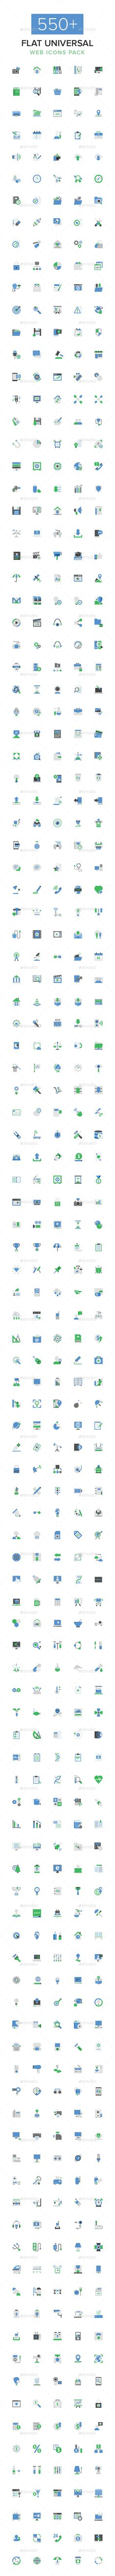 550+ Flat Universal Web Icons Pack #design Download: http://graphicriver.net/item/550-flat-universal-web-icons-pack/14296929?ref=ksioks